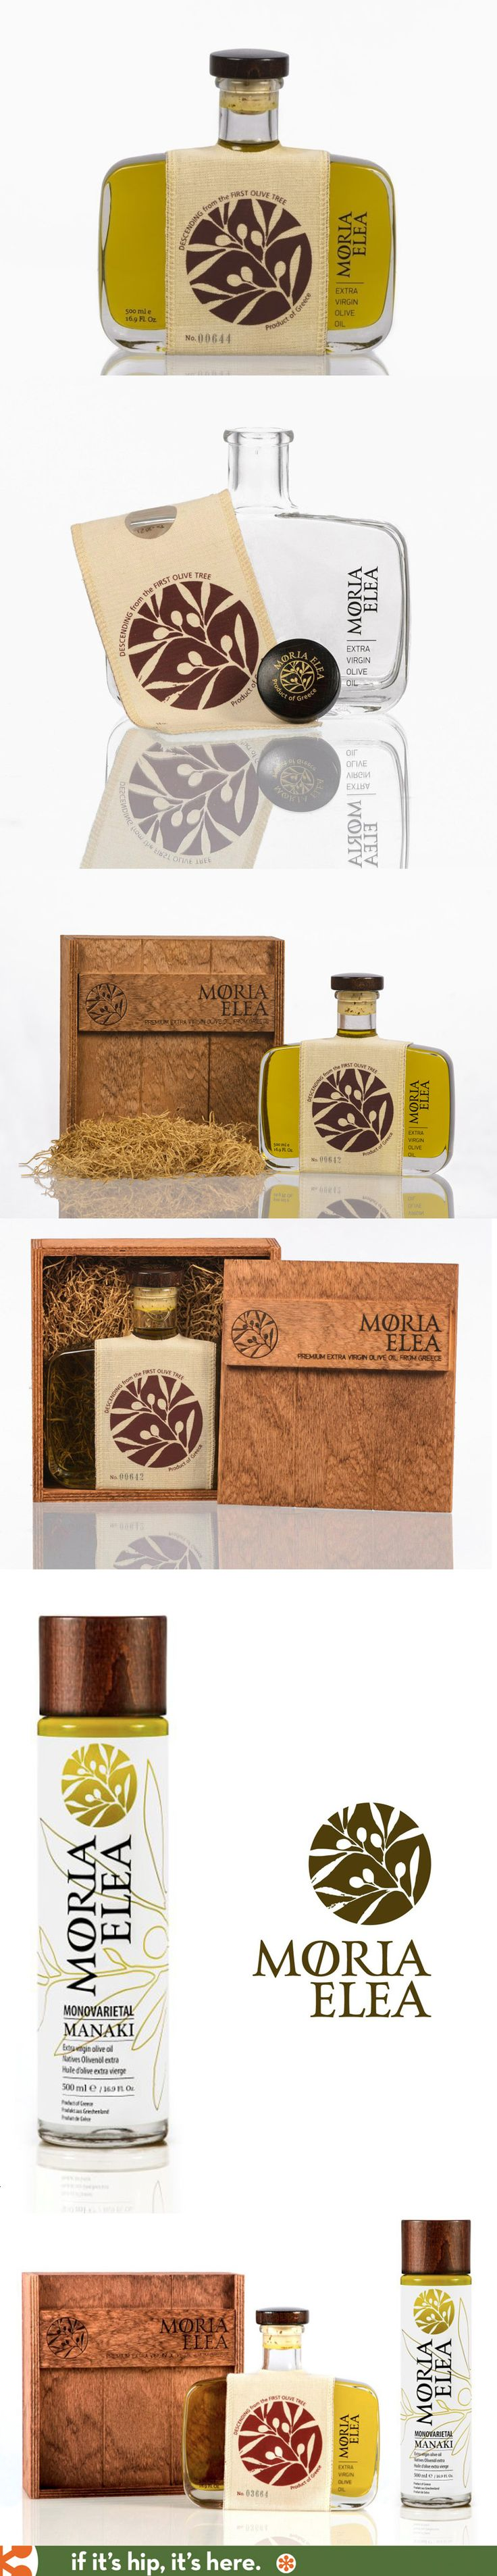 Beautiful bottles and packaging for Moria Olea, olive oil from Greece.